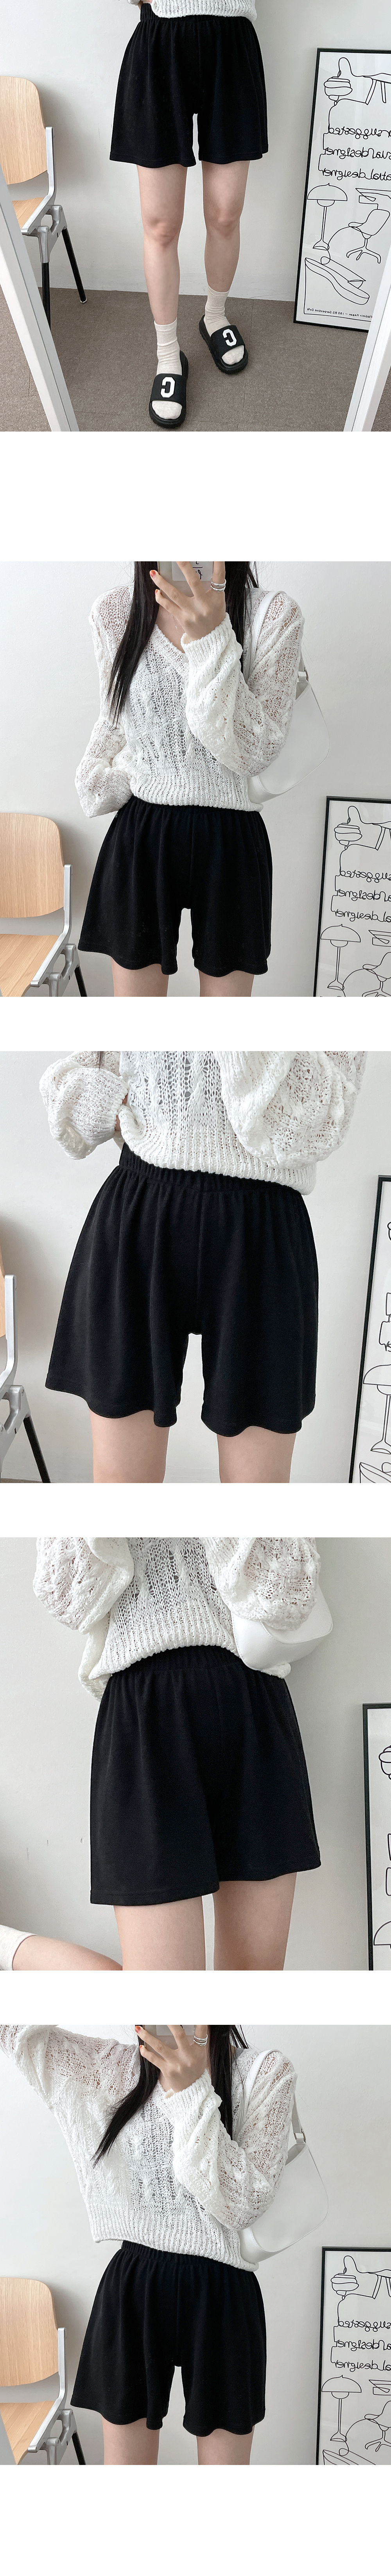 Is Daily Banding Shorts